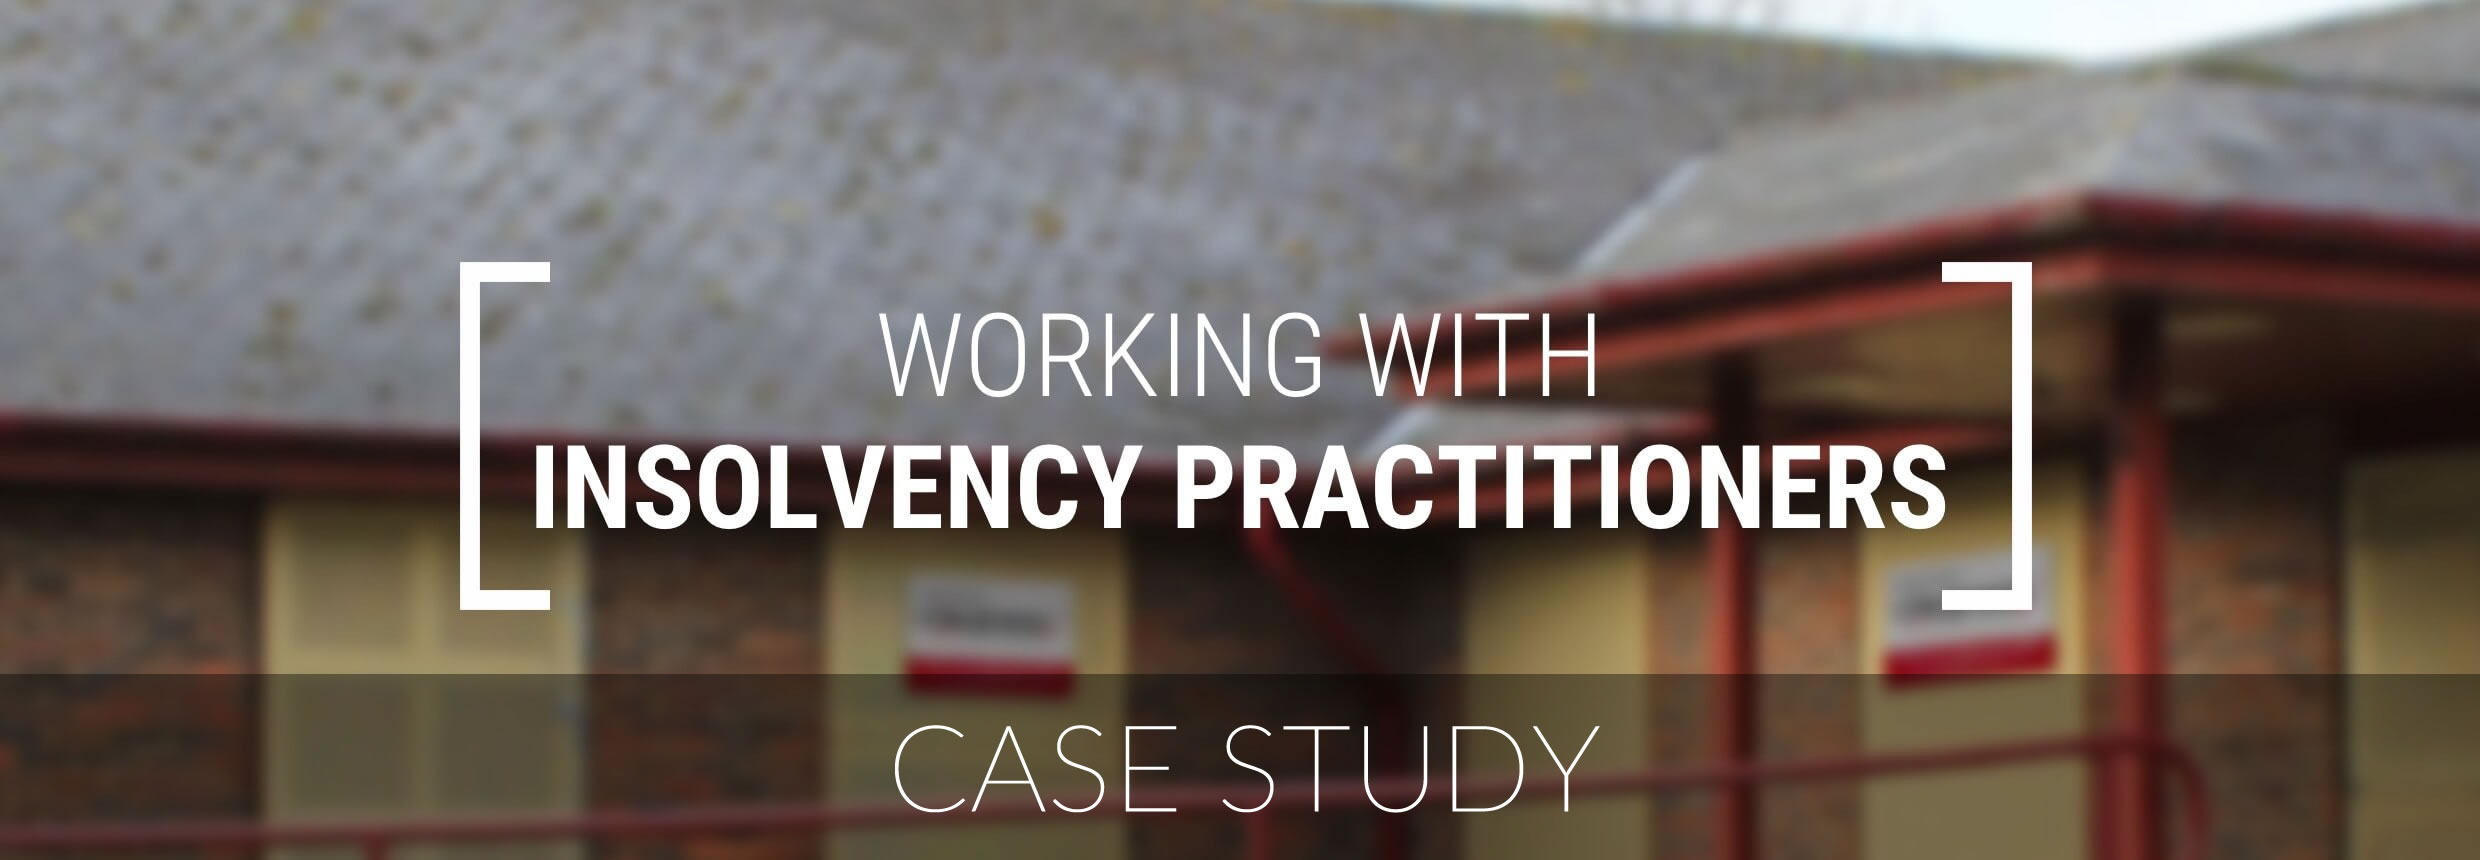 Clearway Case Study - Working With Insolvency Practitioners